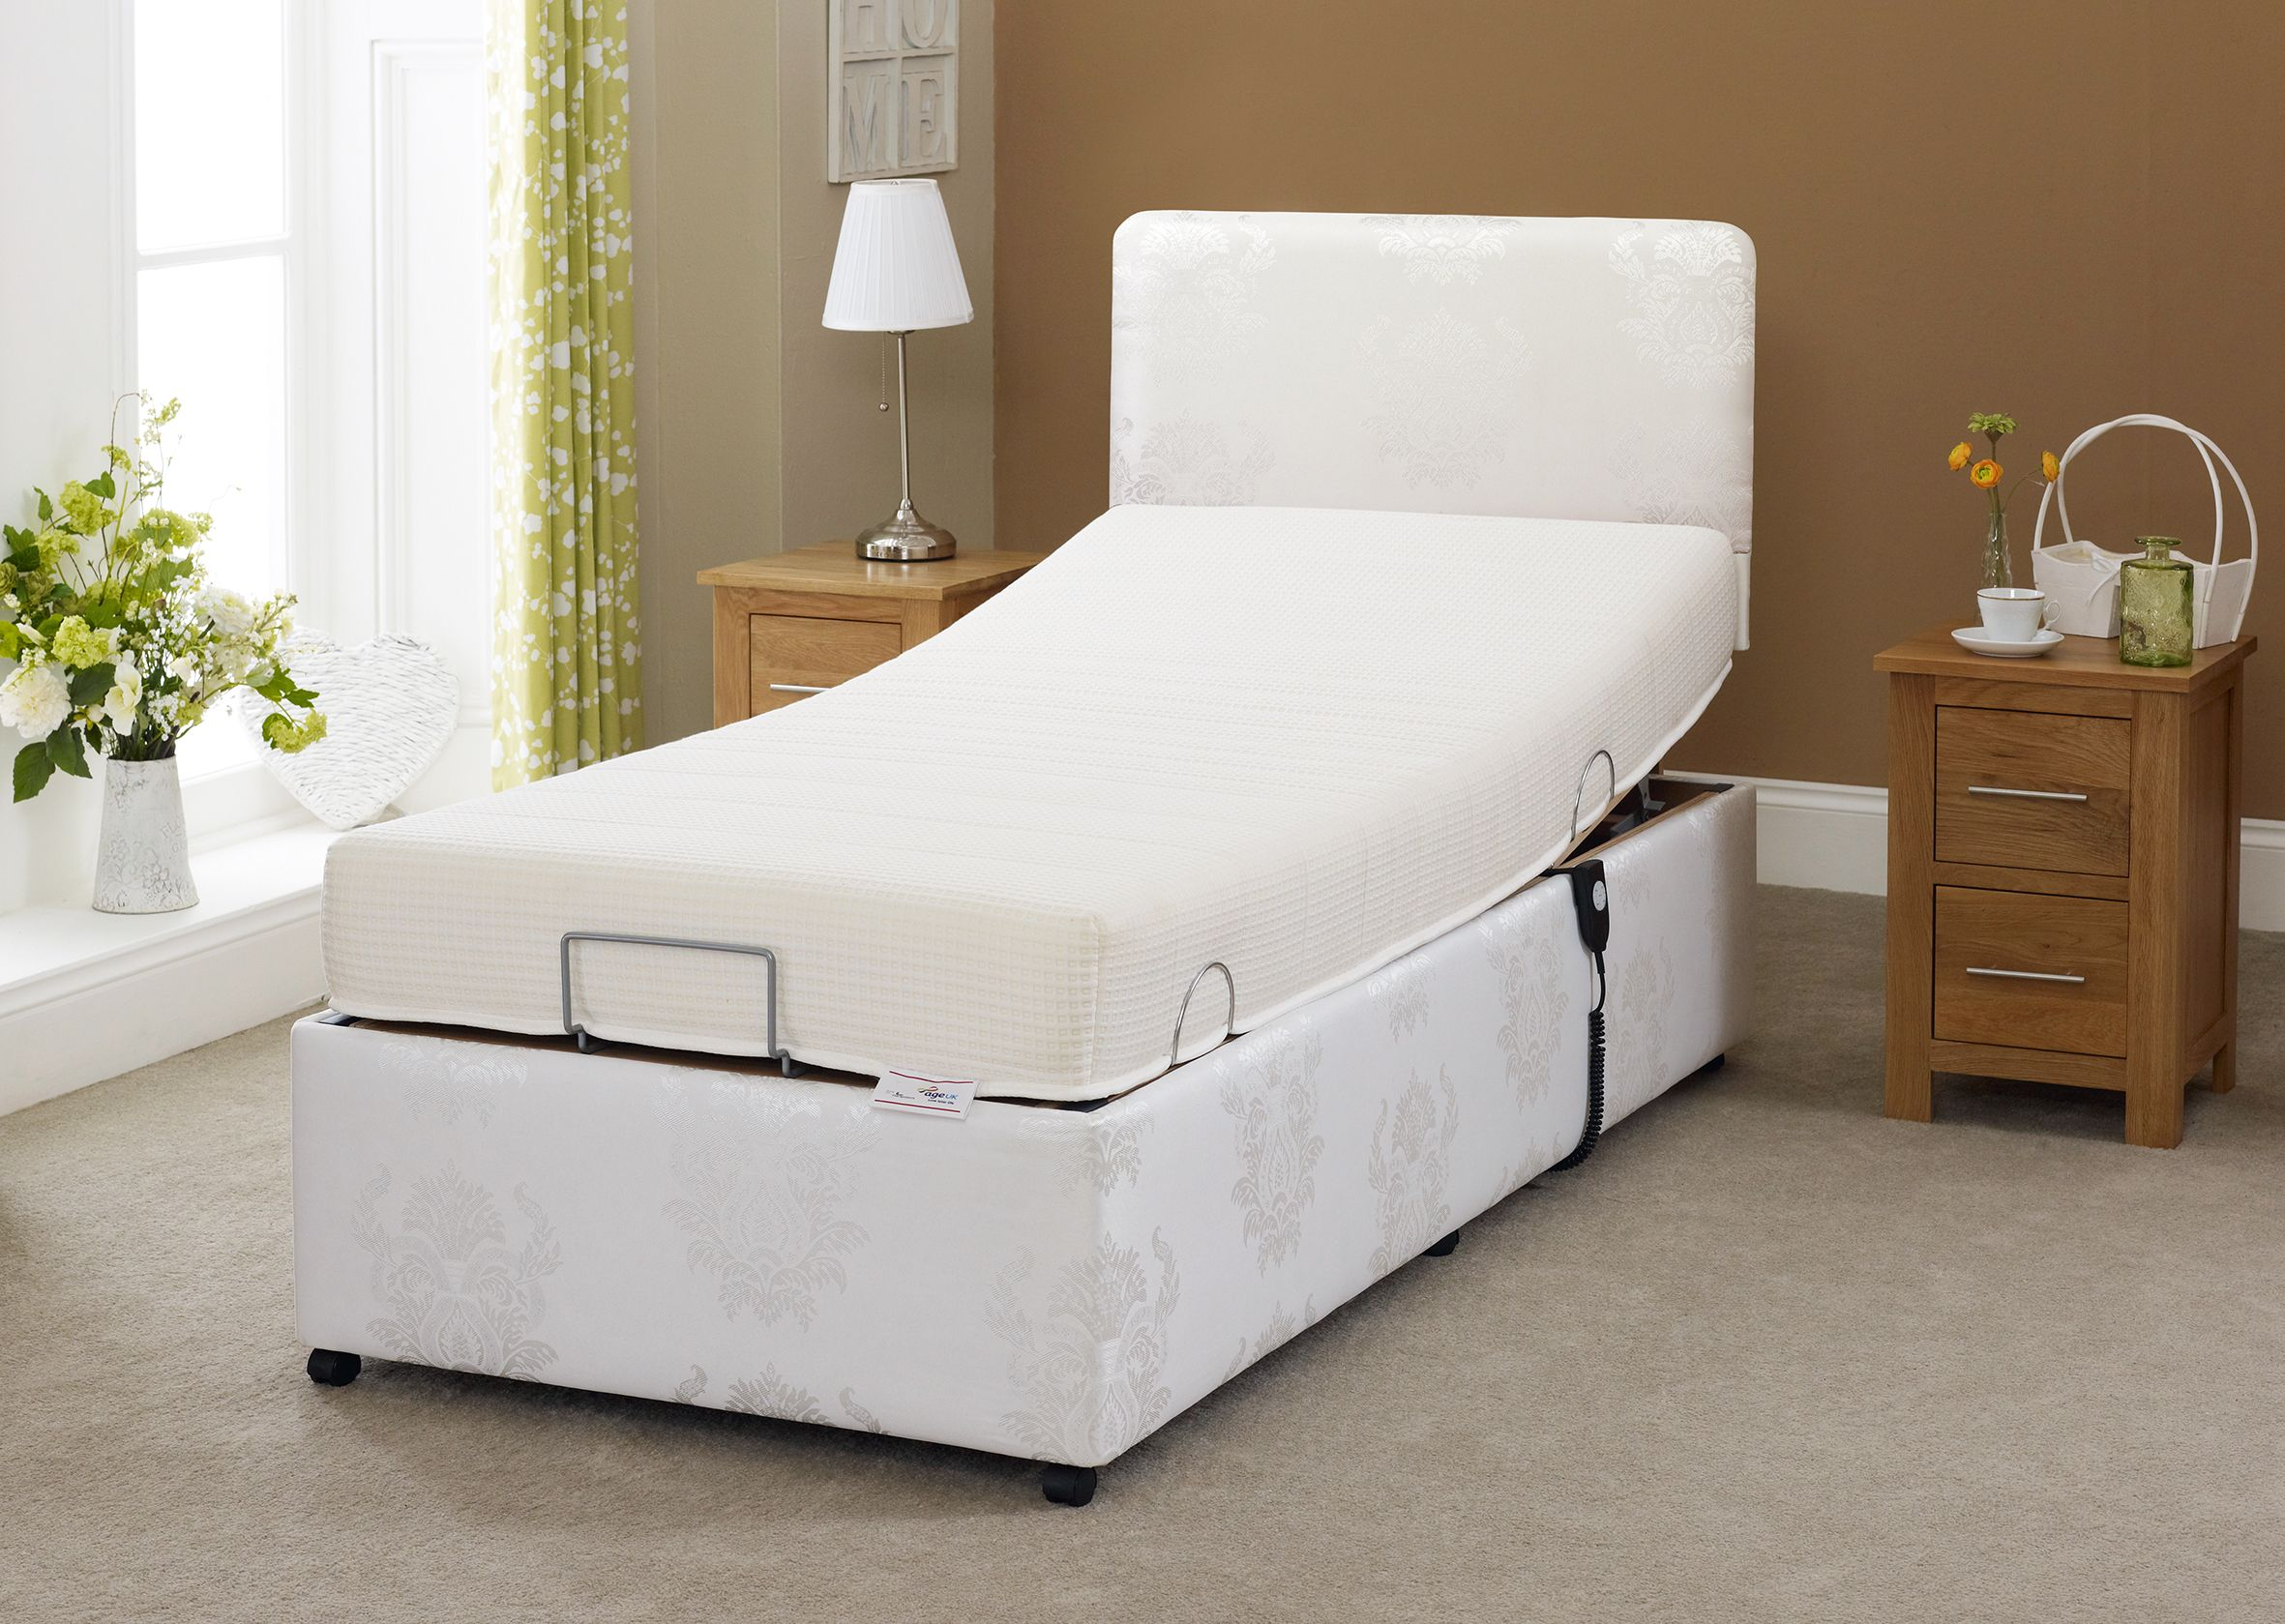 Pin by Age UK Shop on Beds Adjustable beds, Bed